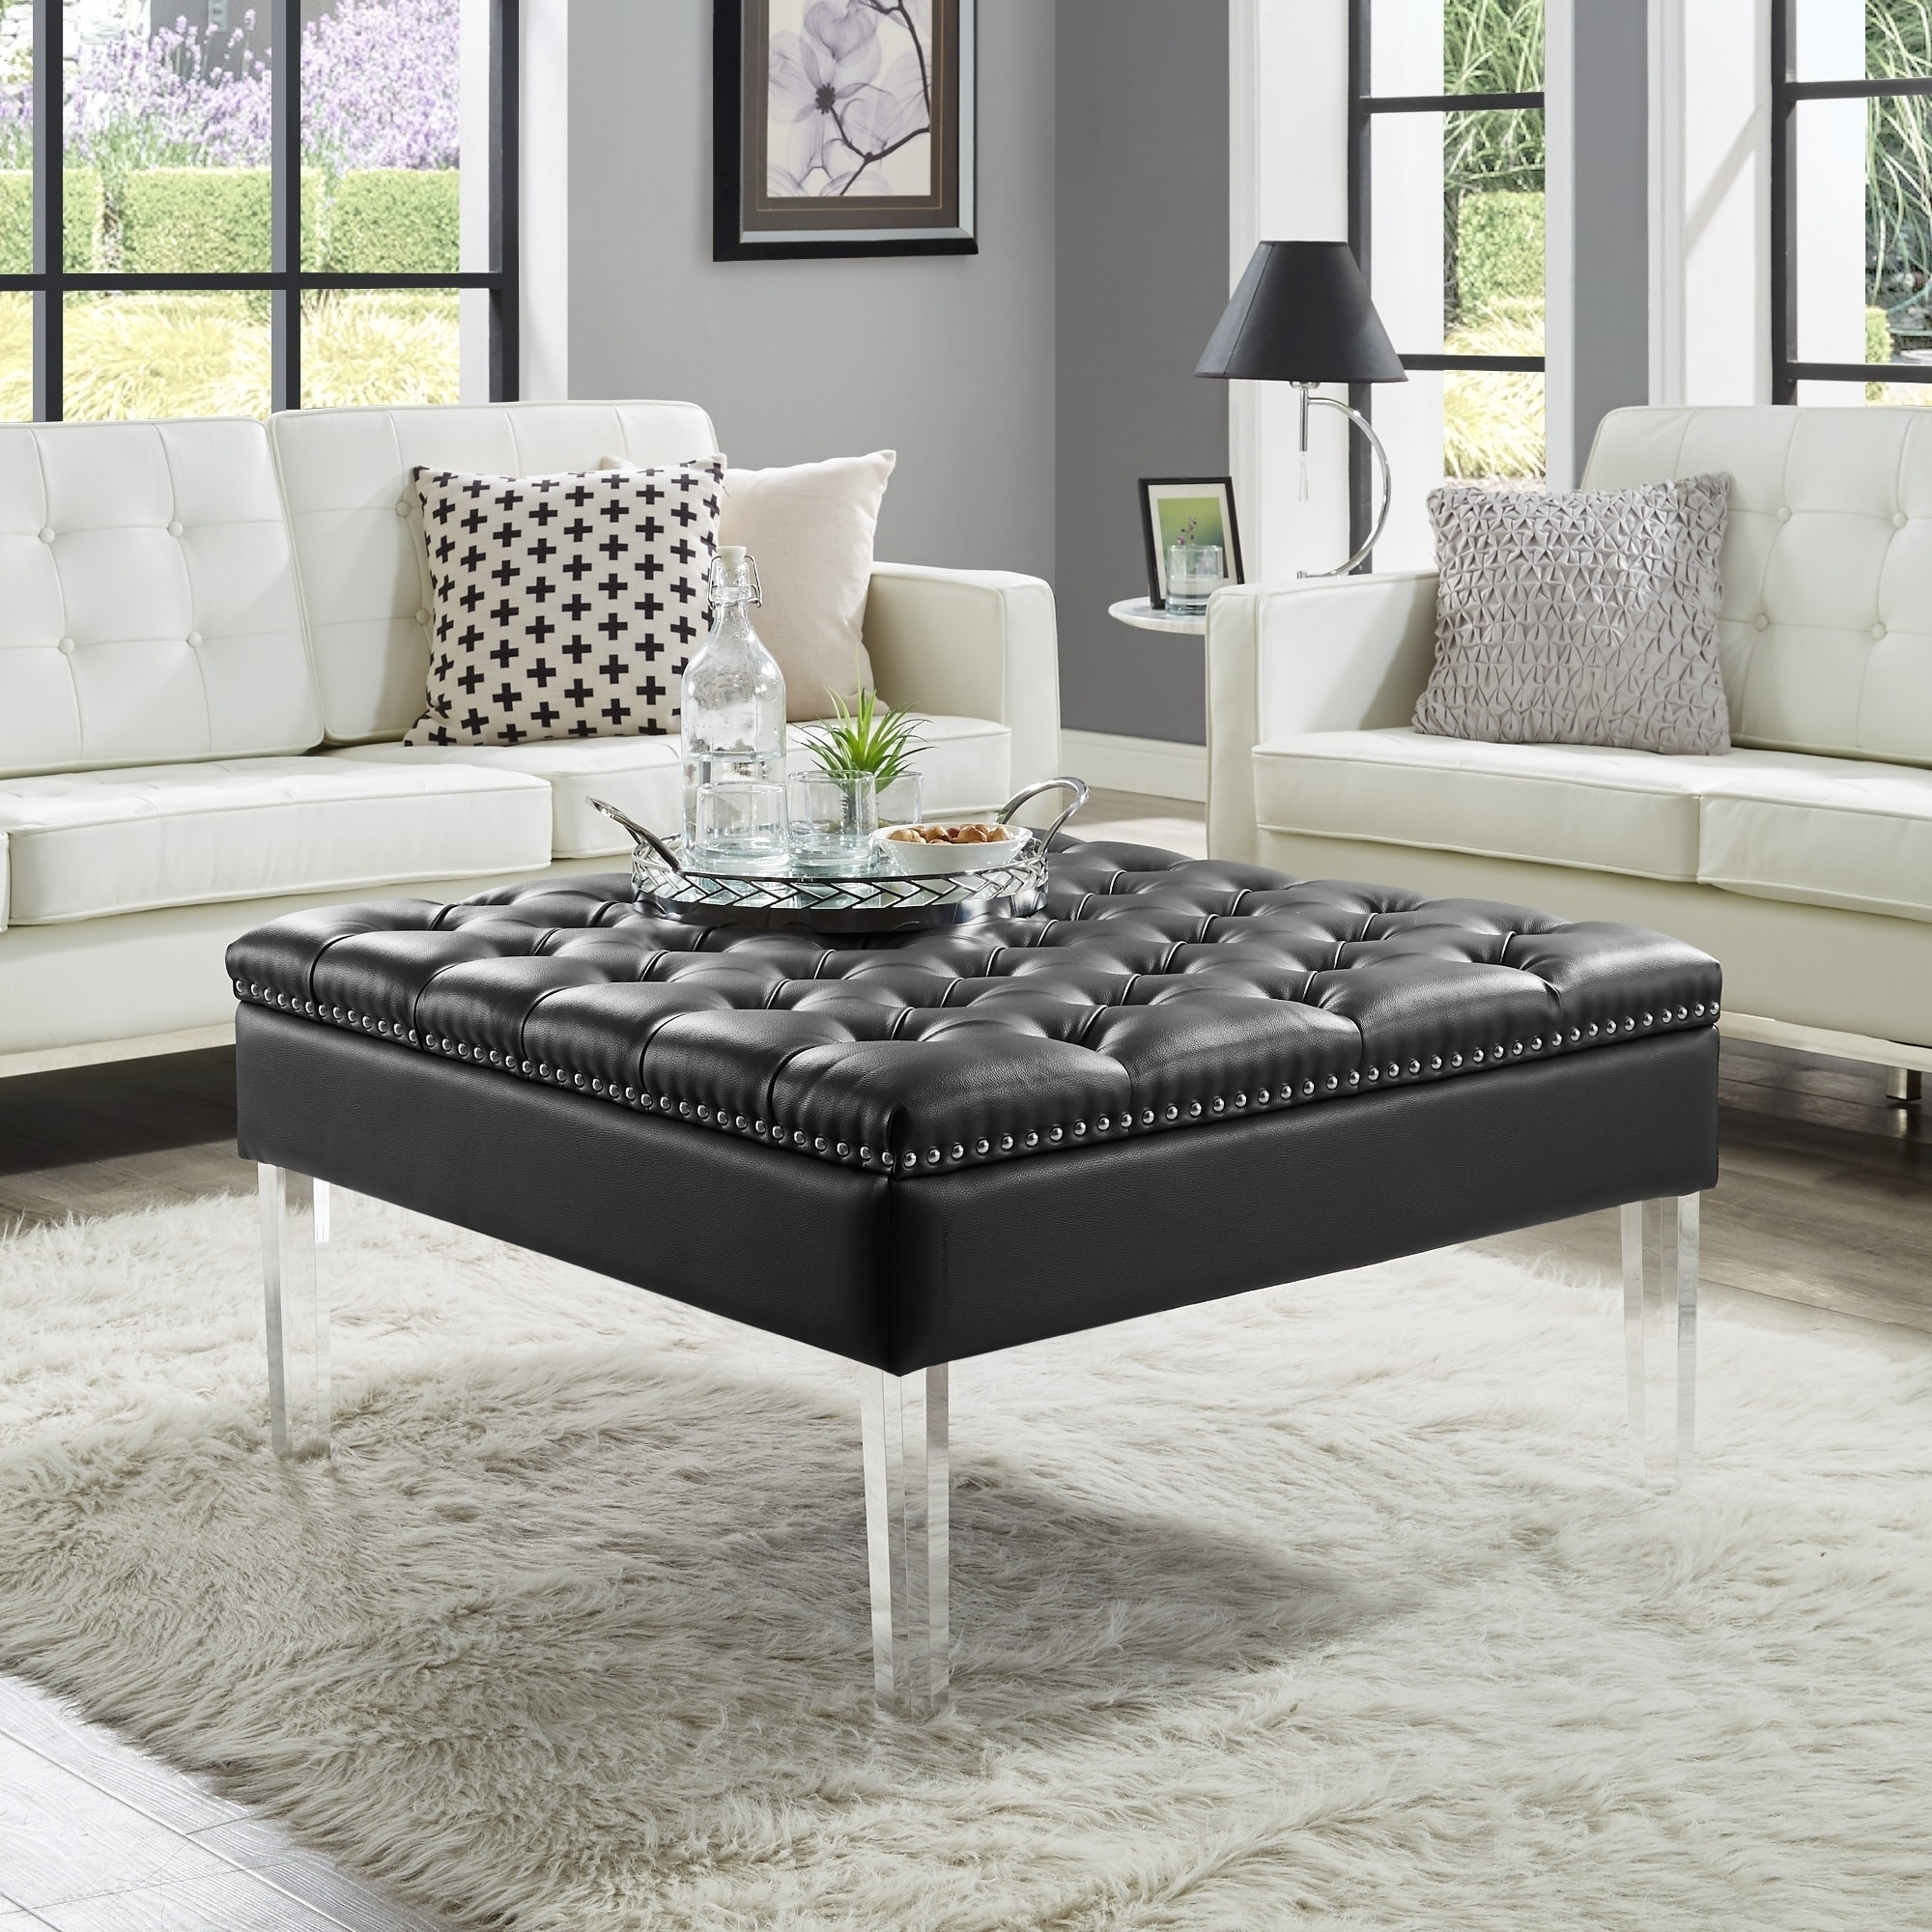 vivian leather oversized button tufted ottoman coffee table